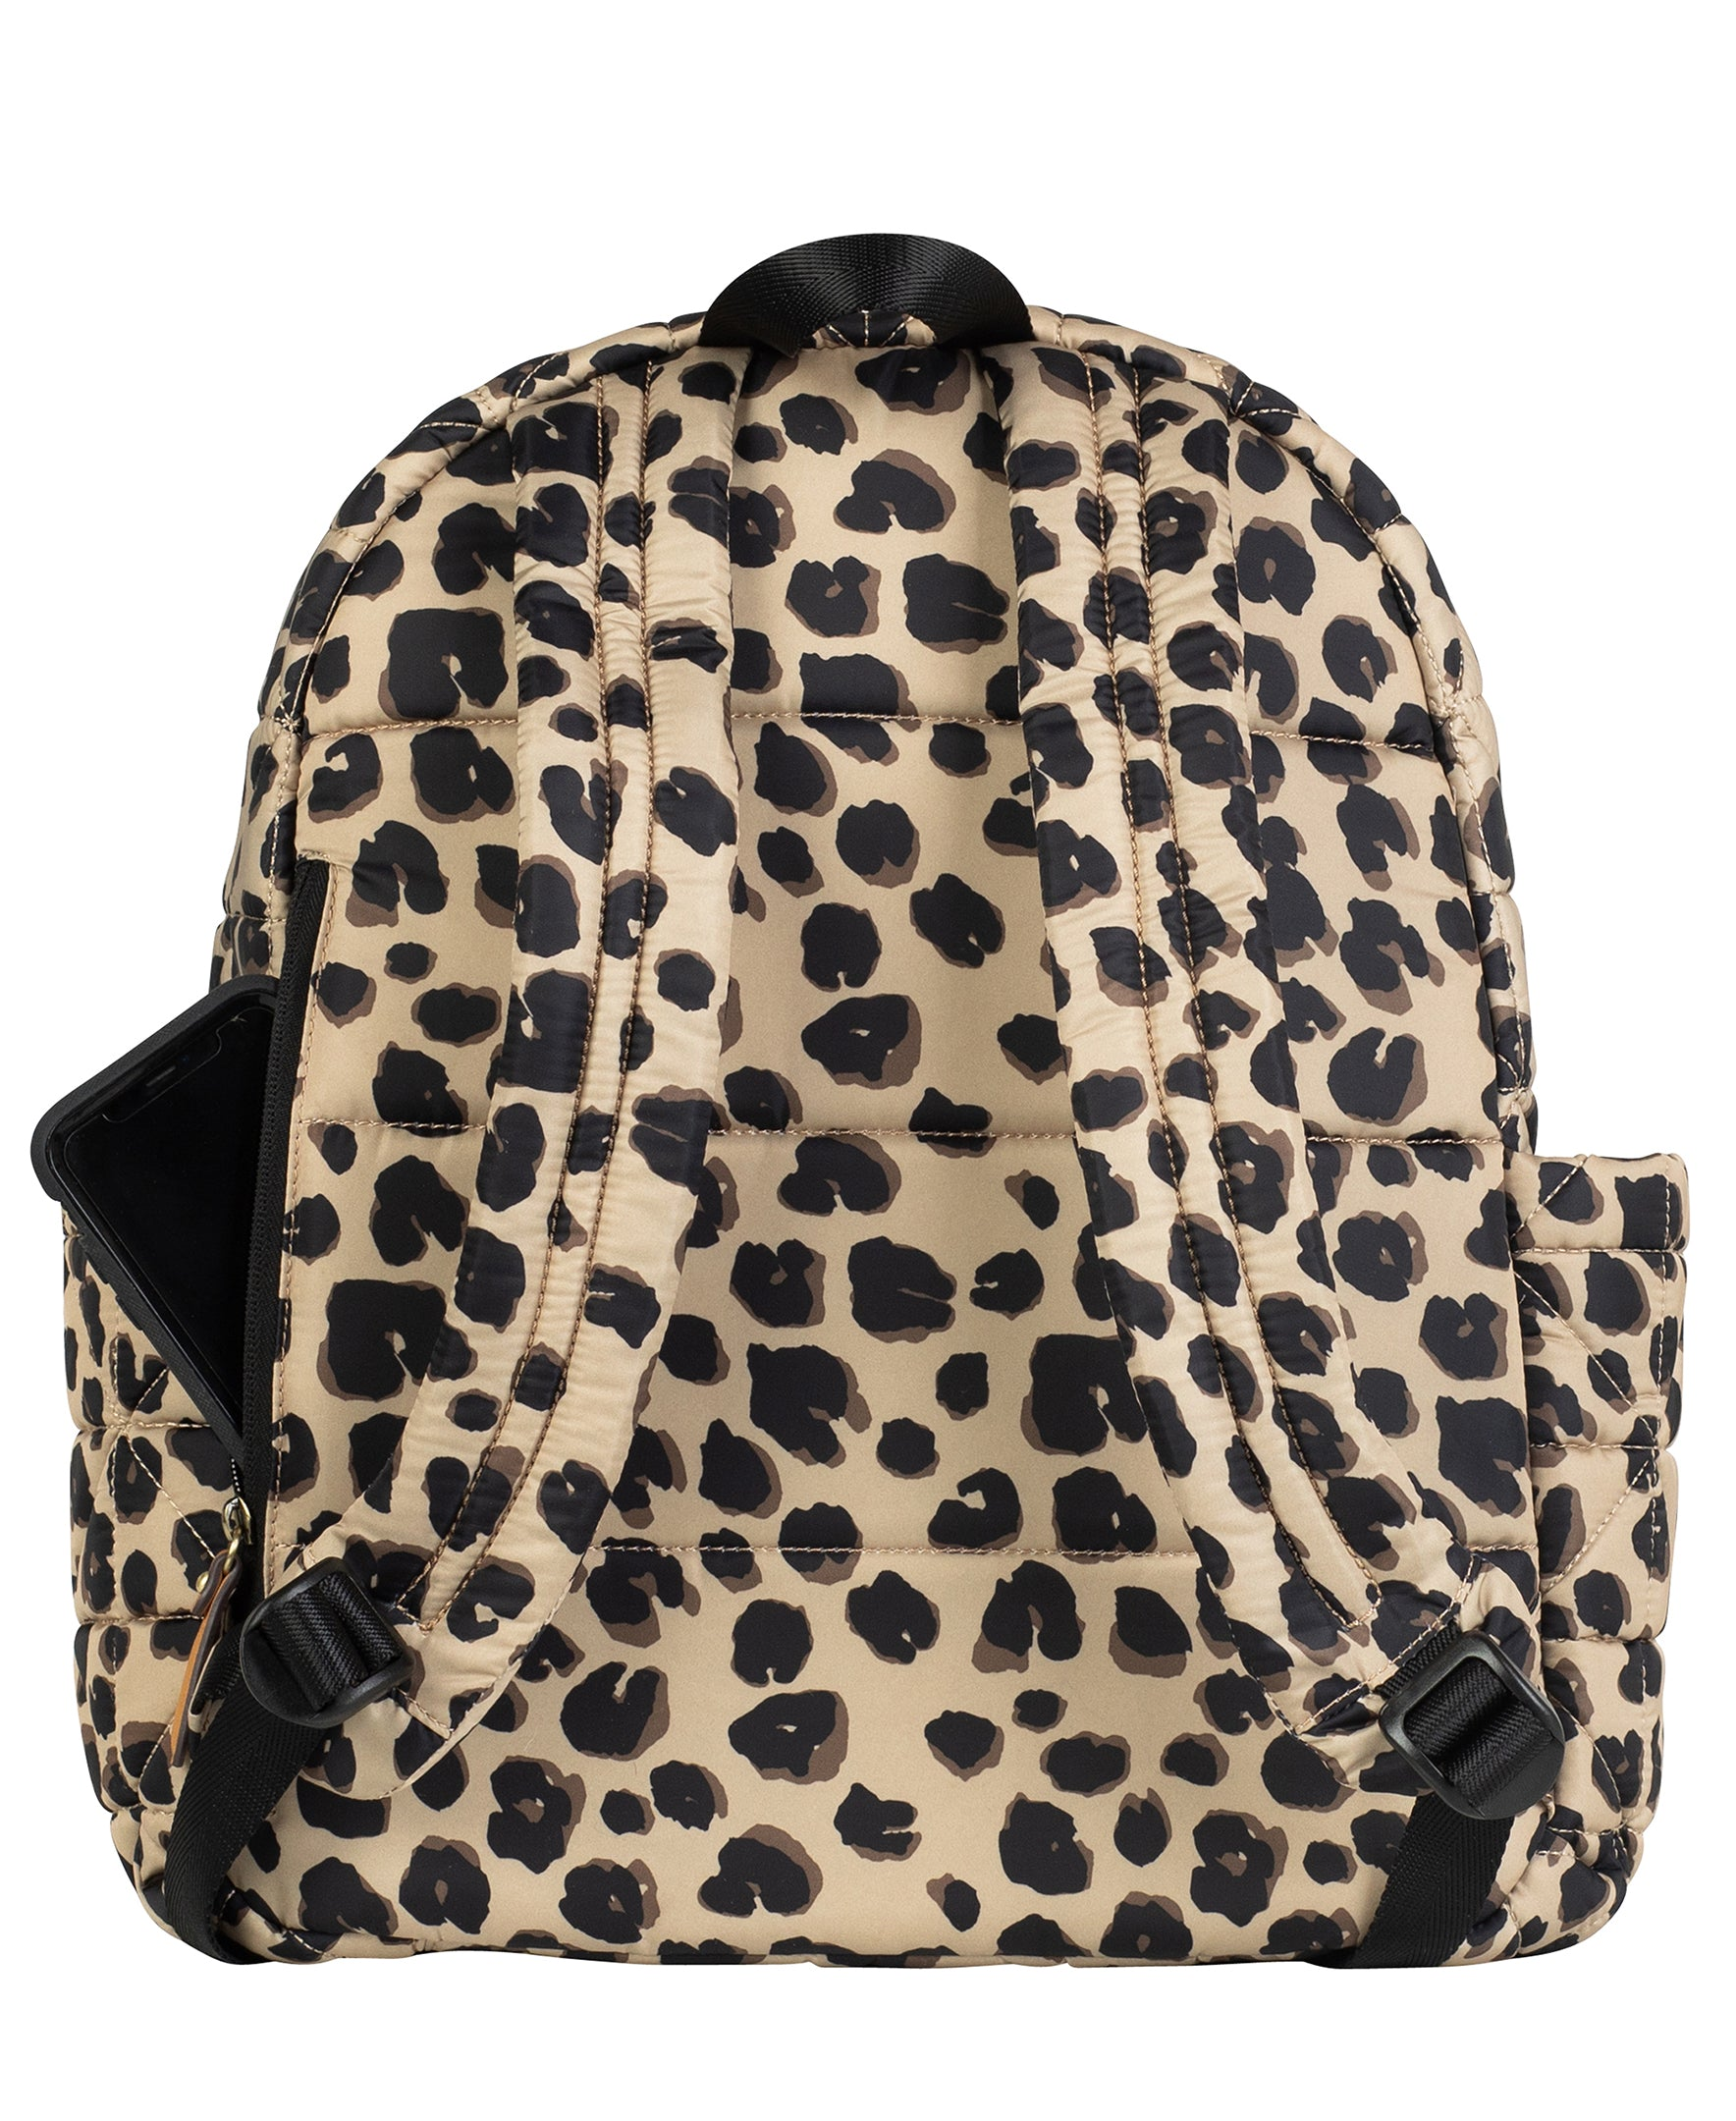 Back view of leopard companion backpack